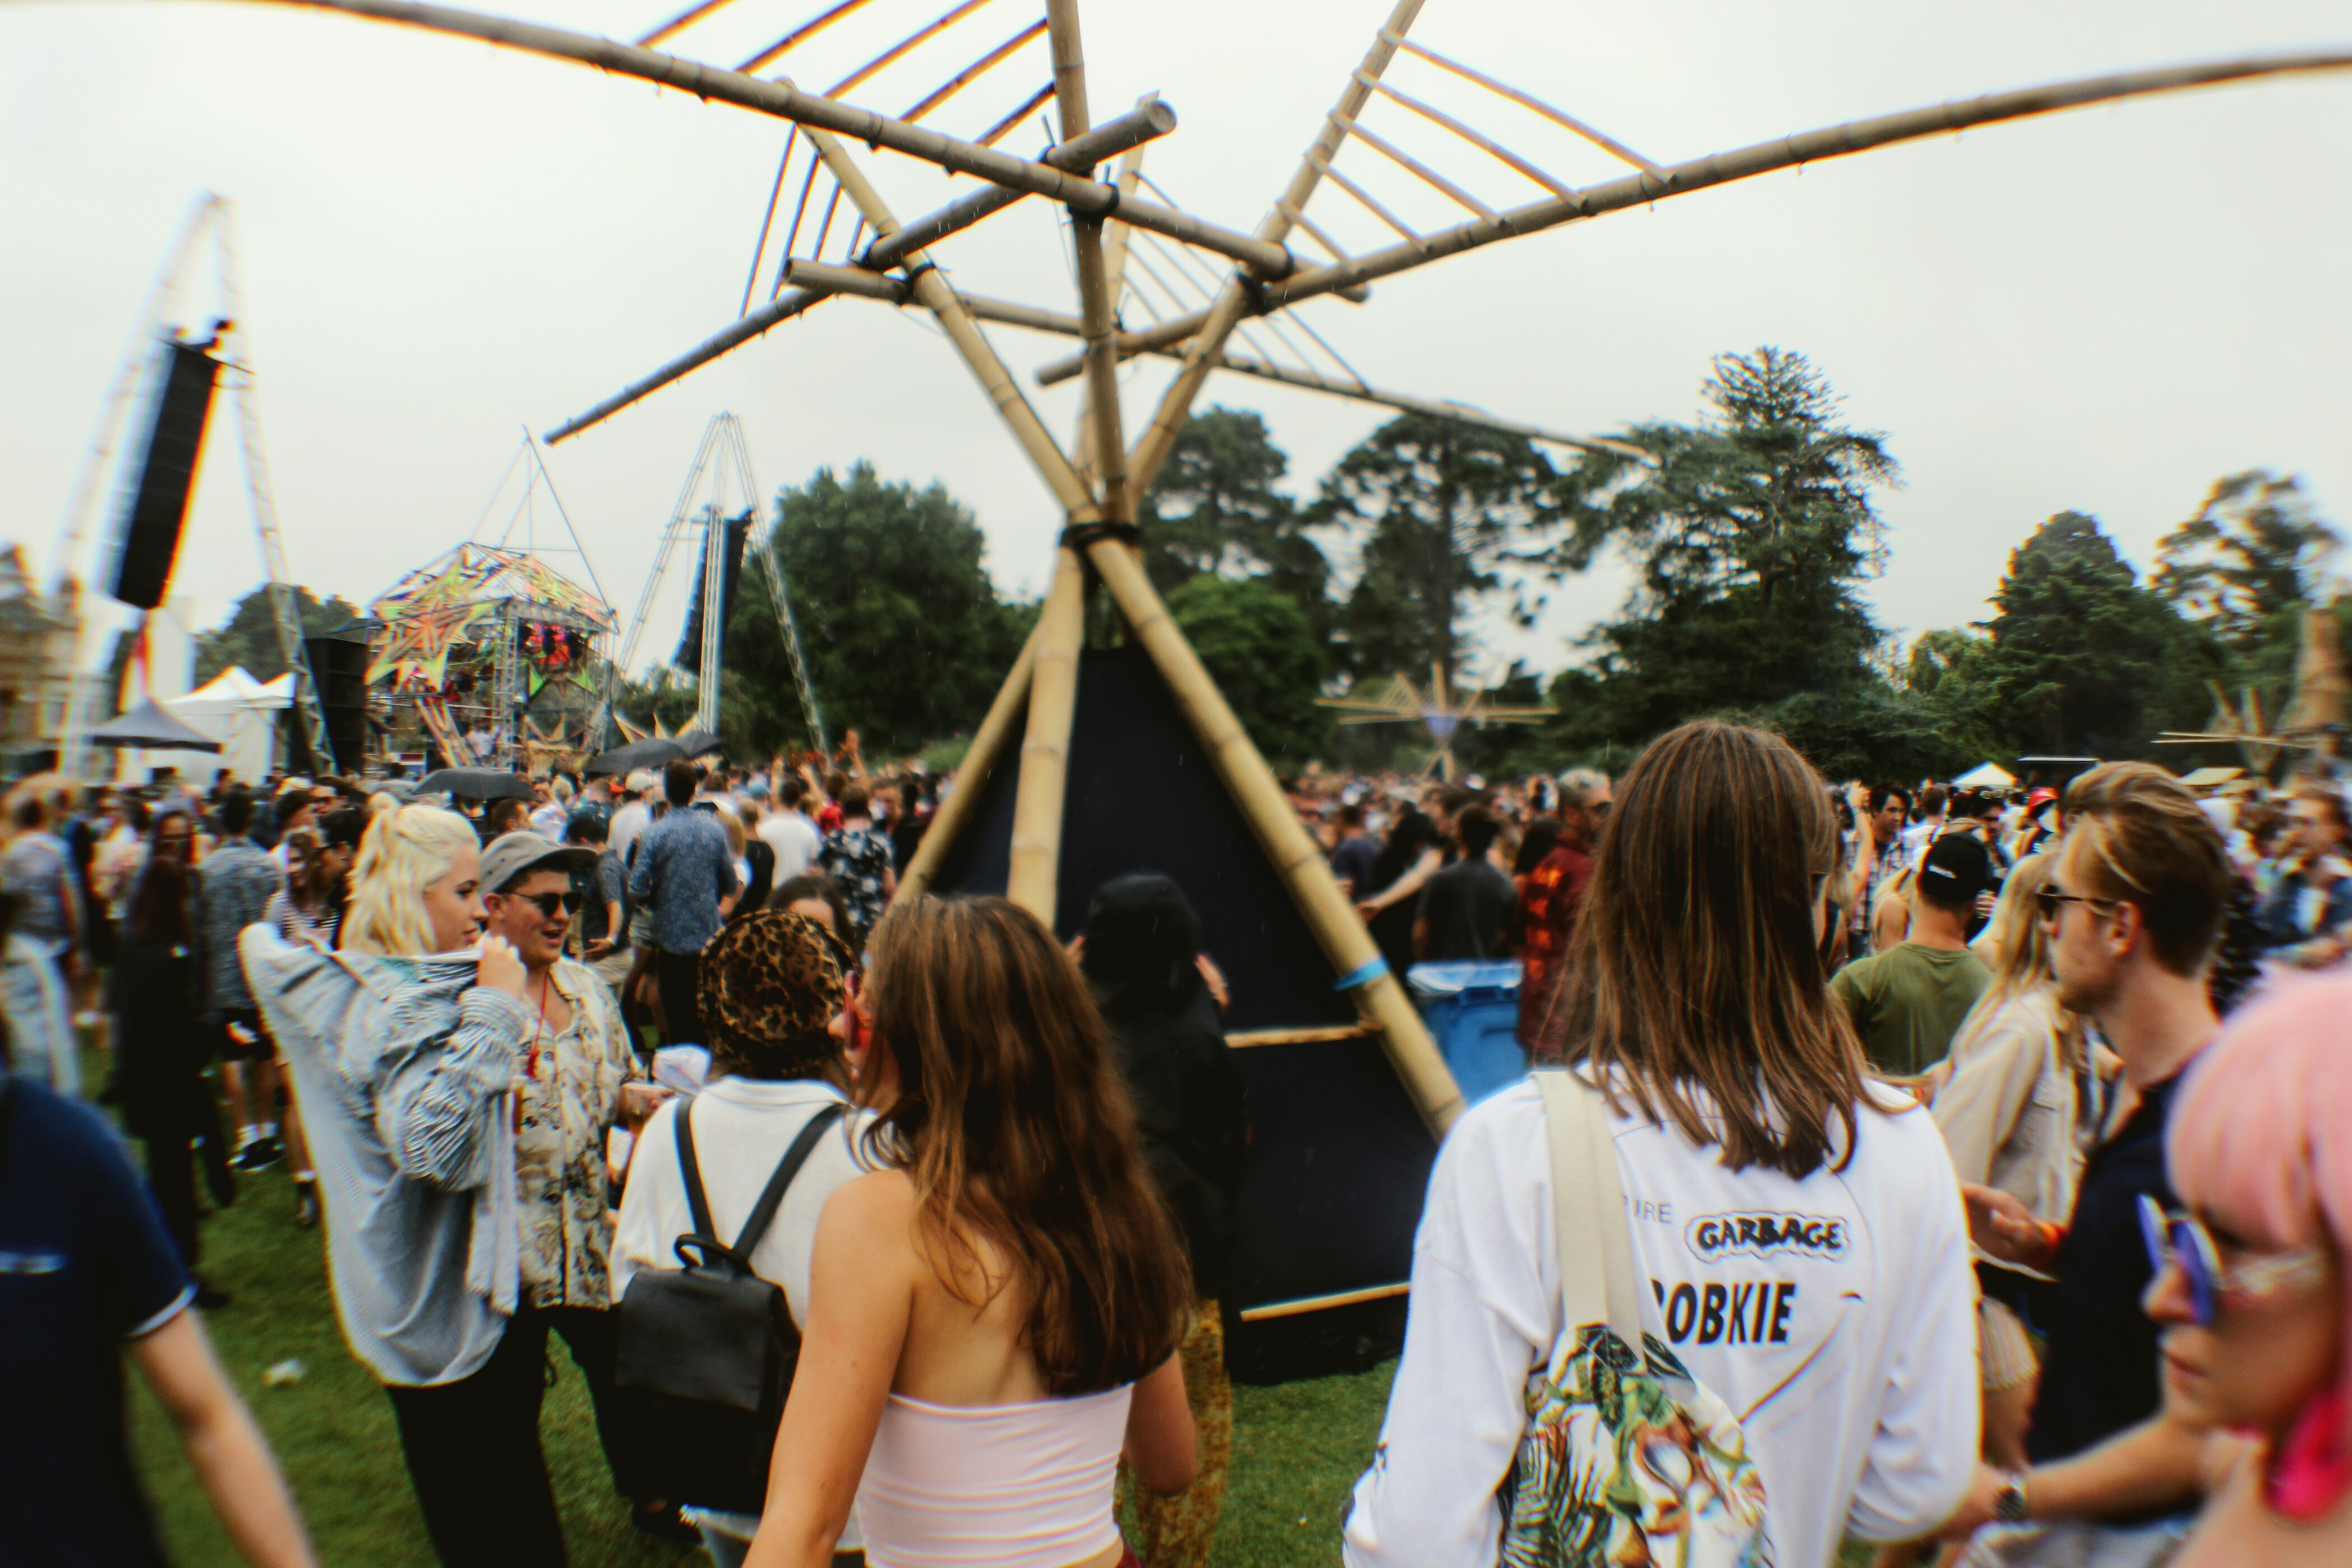 The Bastille stage with the Funktion-One Vero system hanging above the crowd.